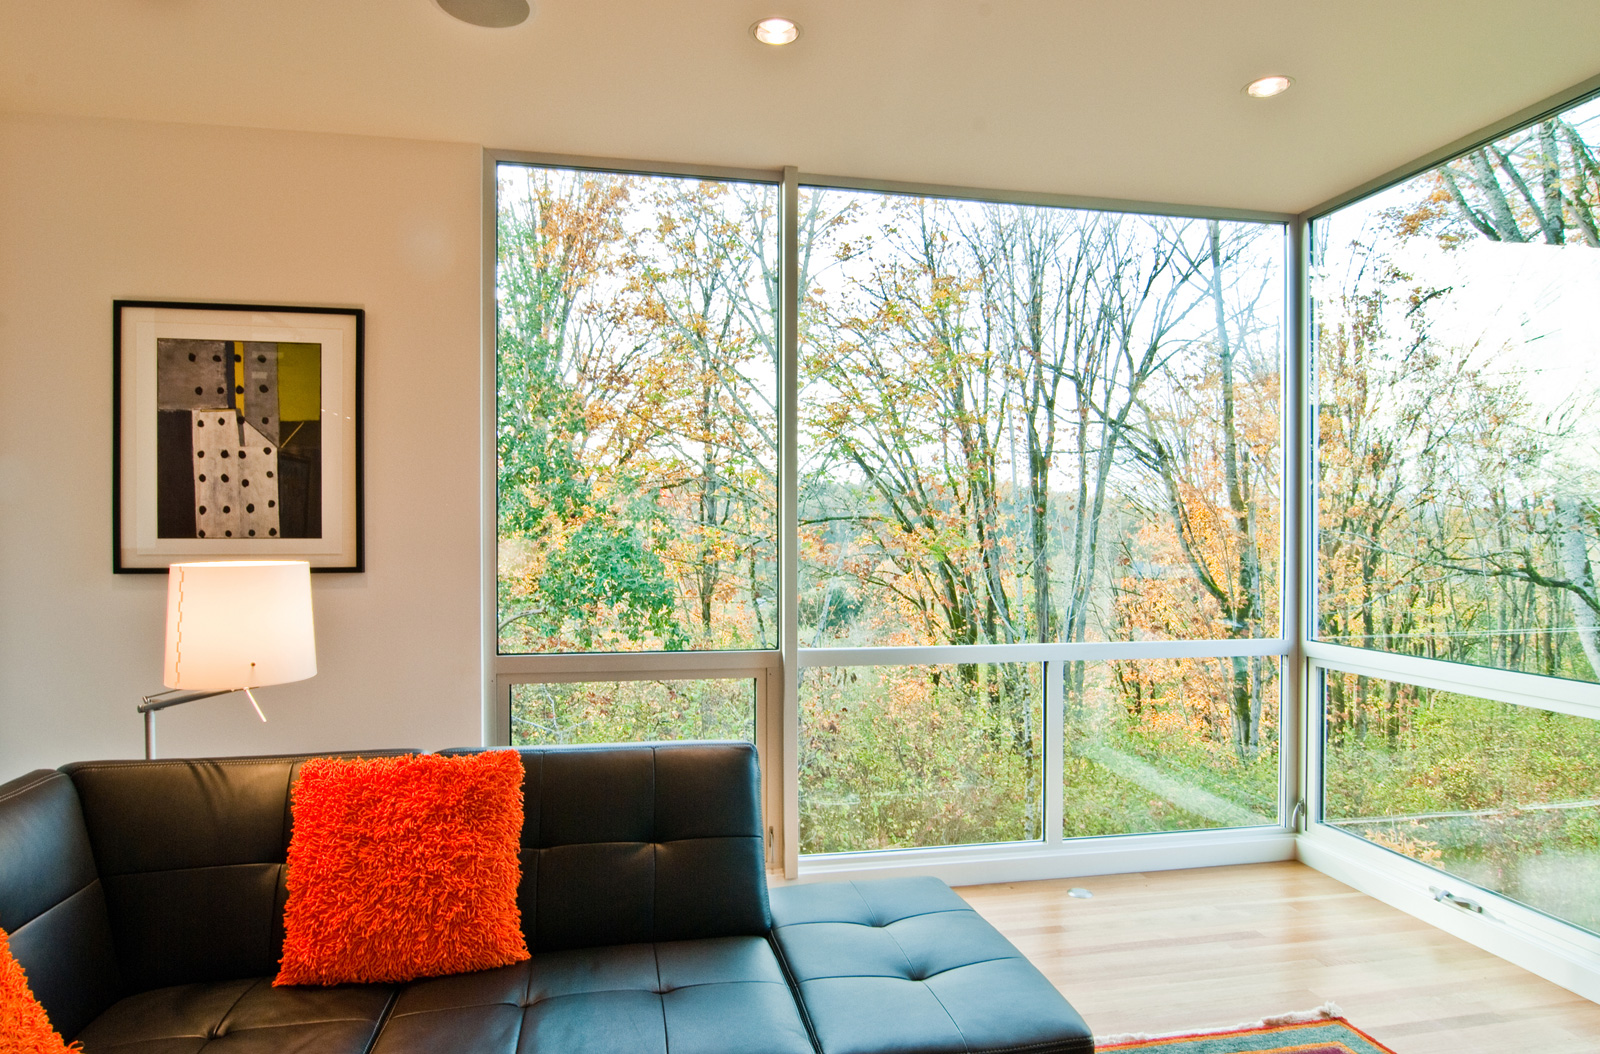 Fenplast Windows Review Home Replacement Window Costs Energy Efficient Windows